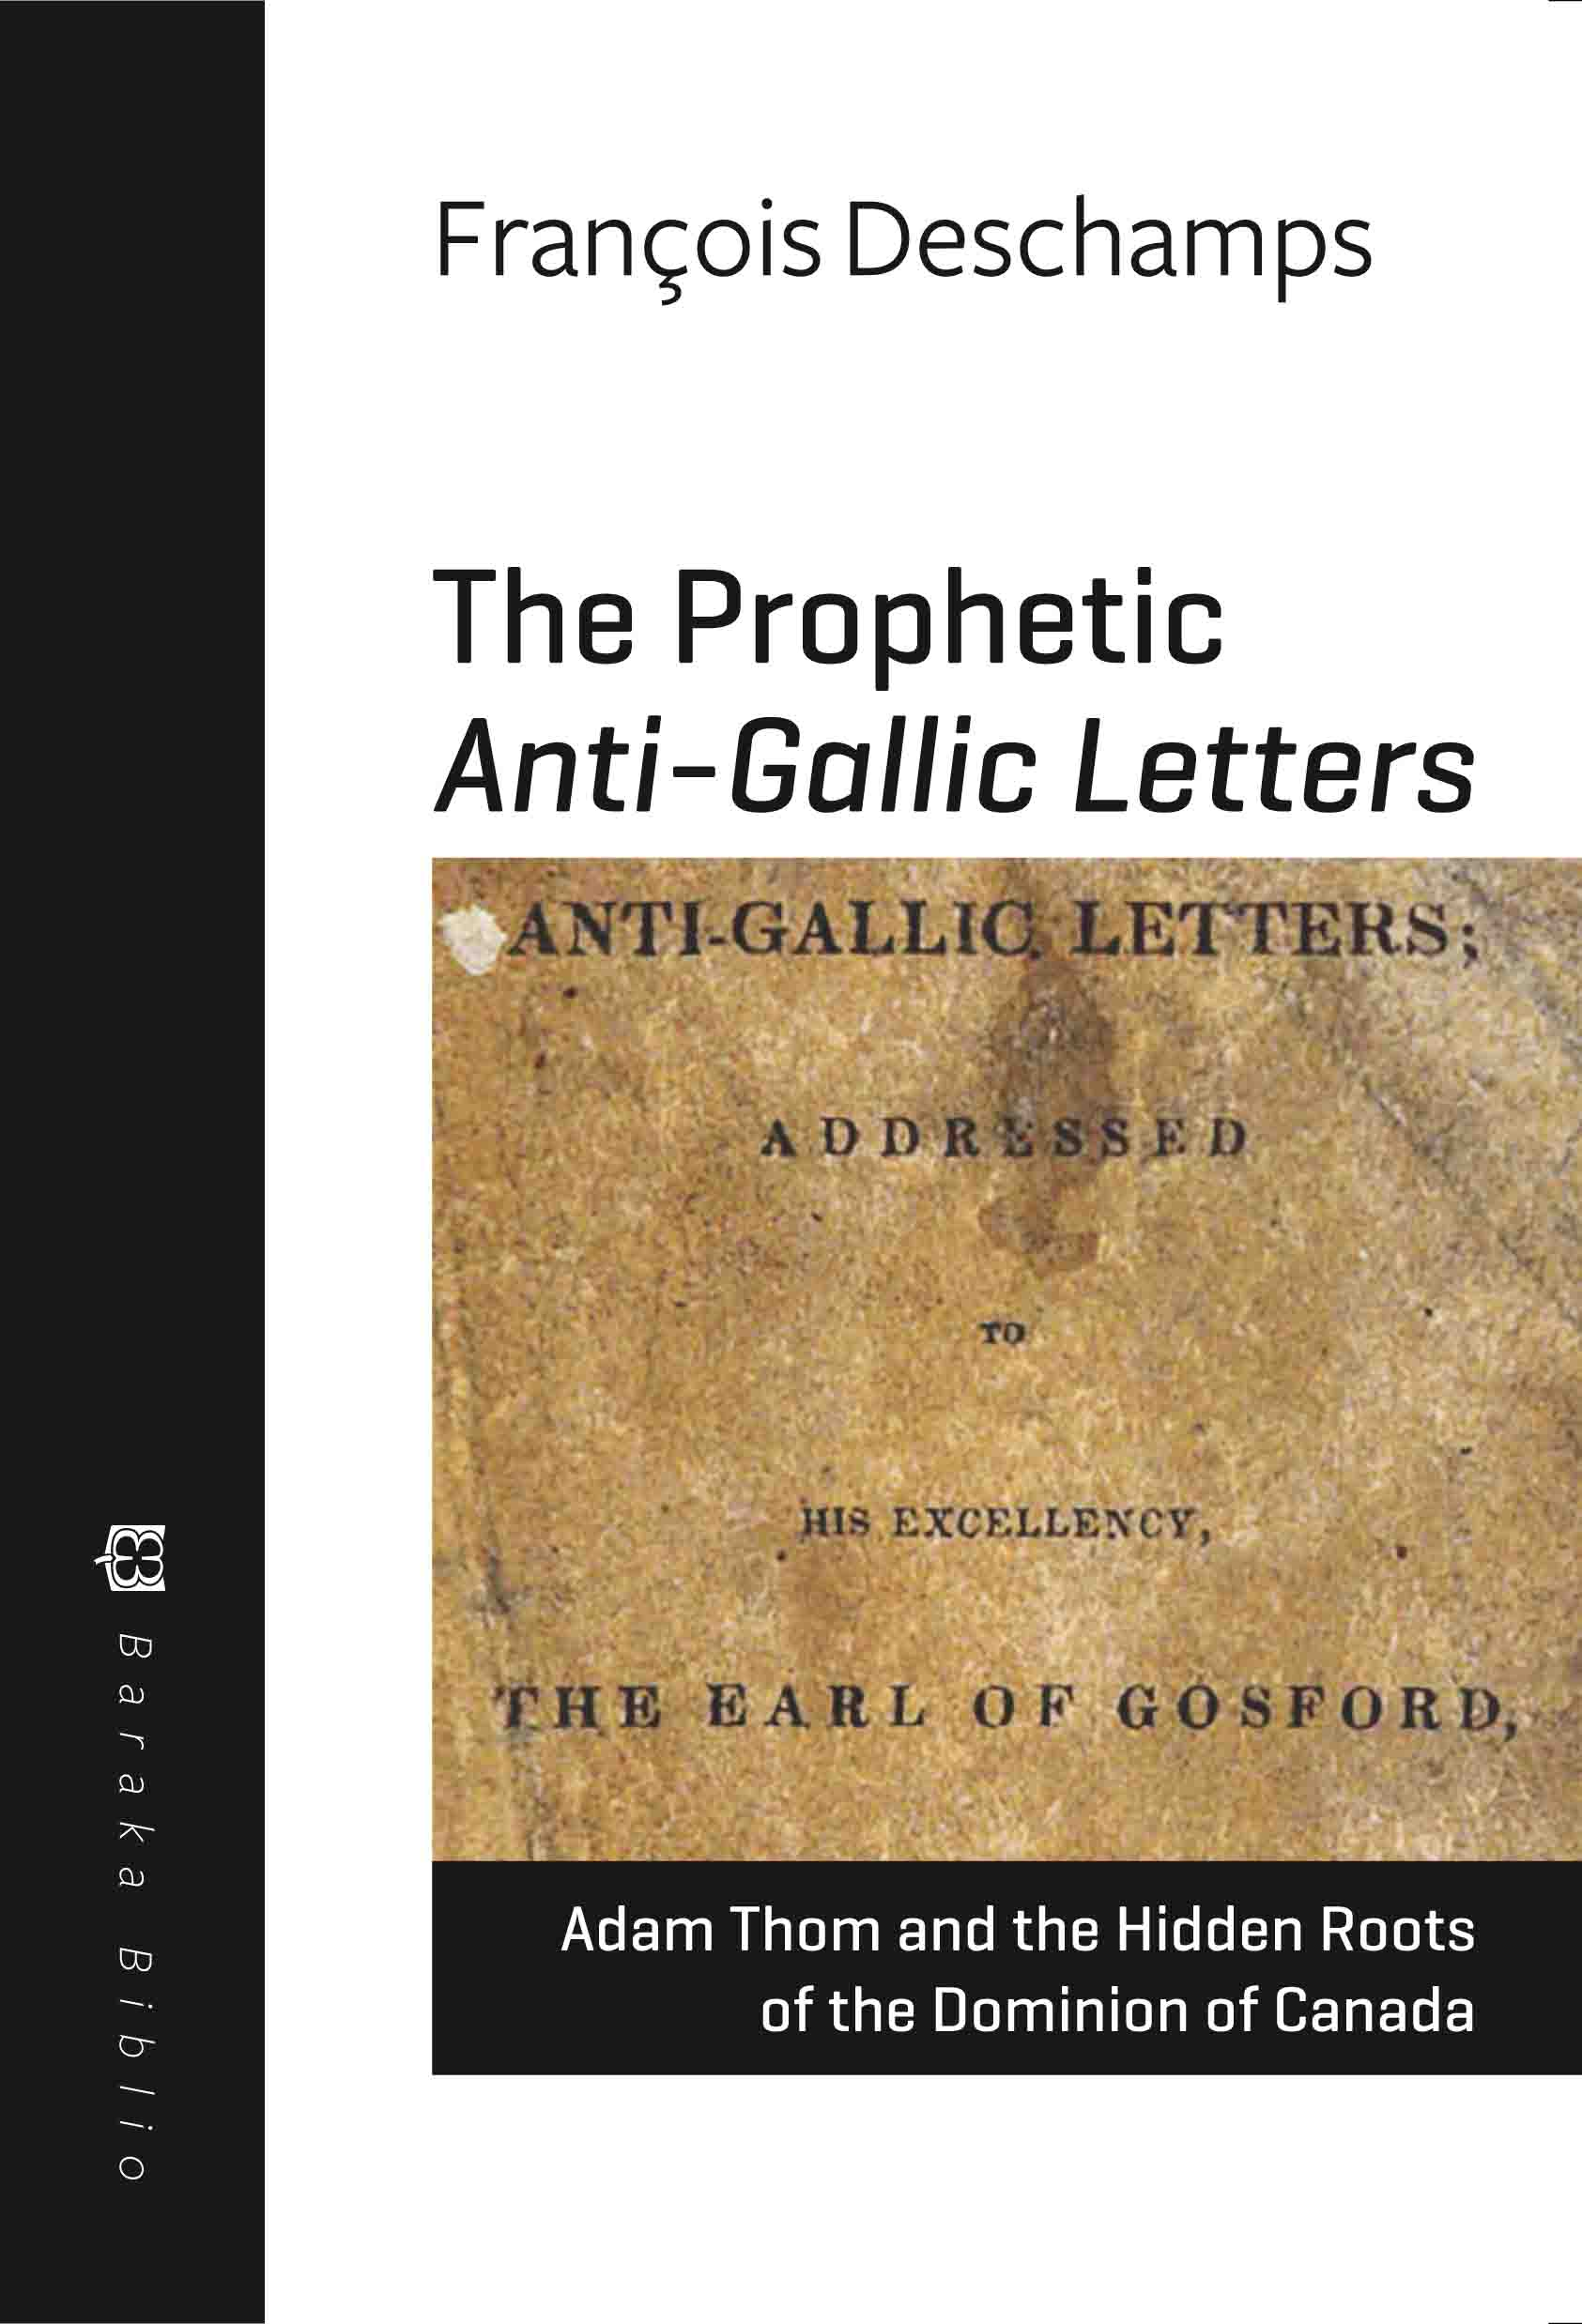 The Prophetic Anti-Gallic Letters